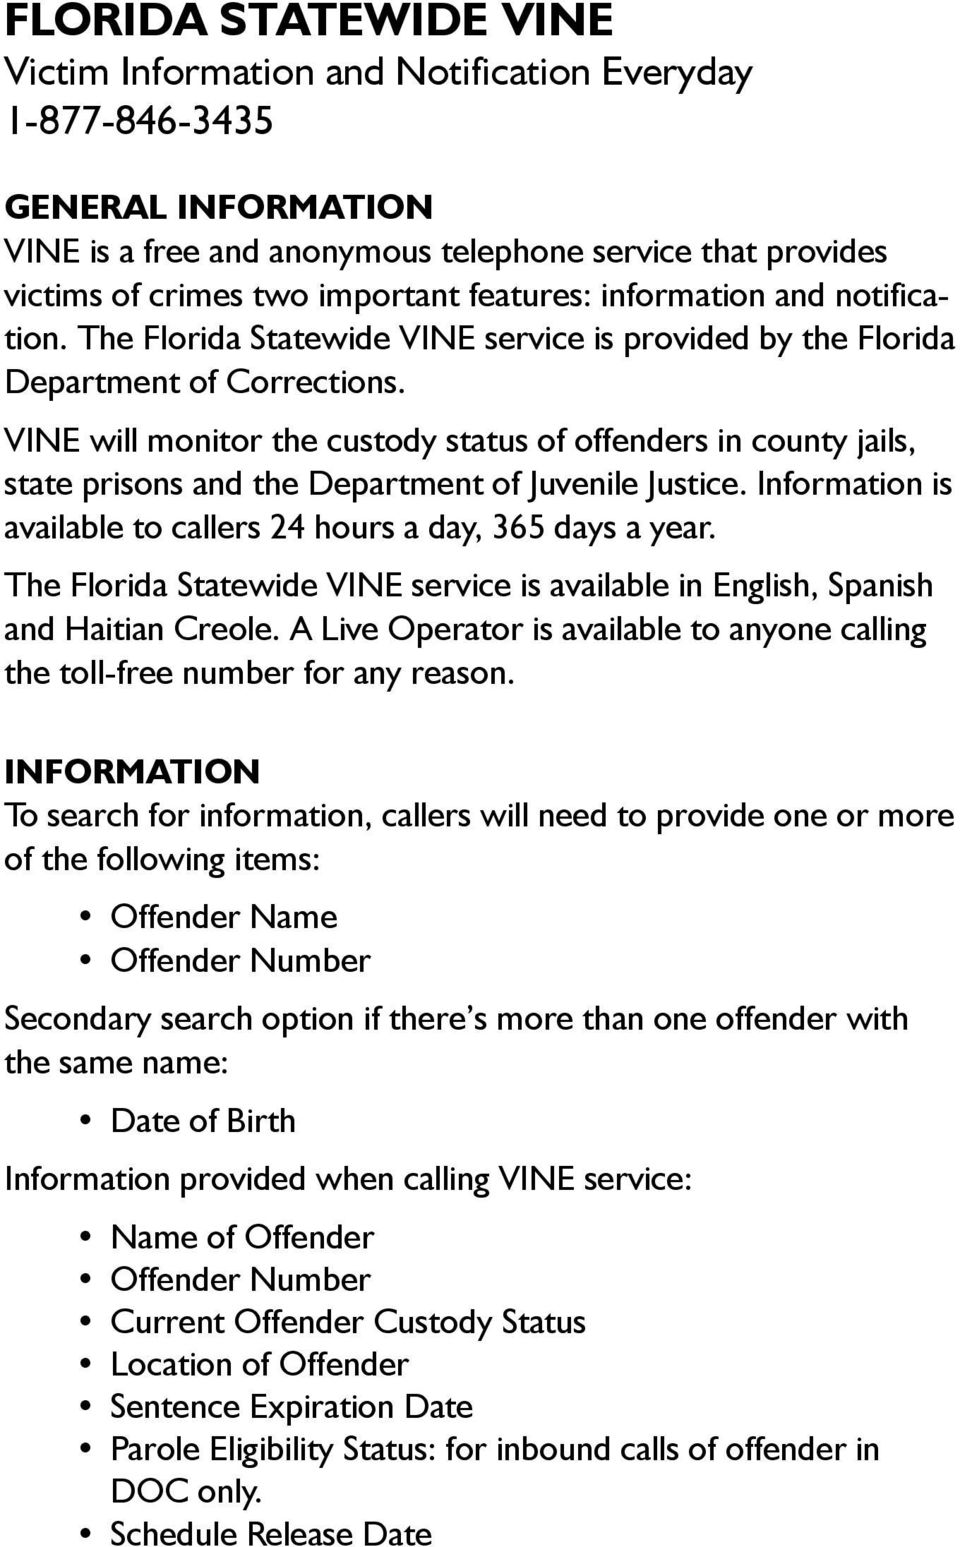 VINE will monitor the custody status of offenders in county jails, state prisons and the Department of Juvenile Justice. Information is available to callers 24 hours a day, 365 days a year.